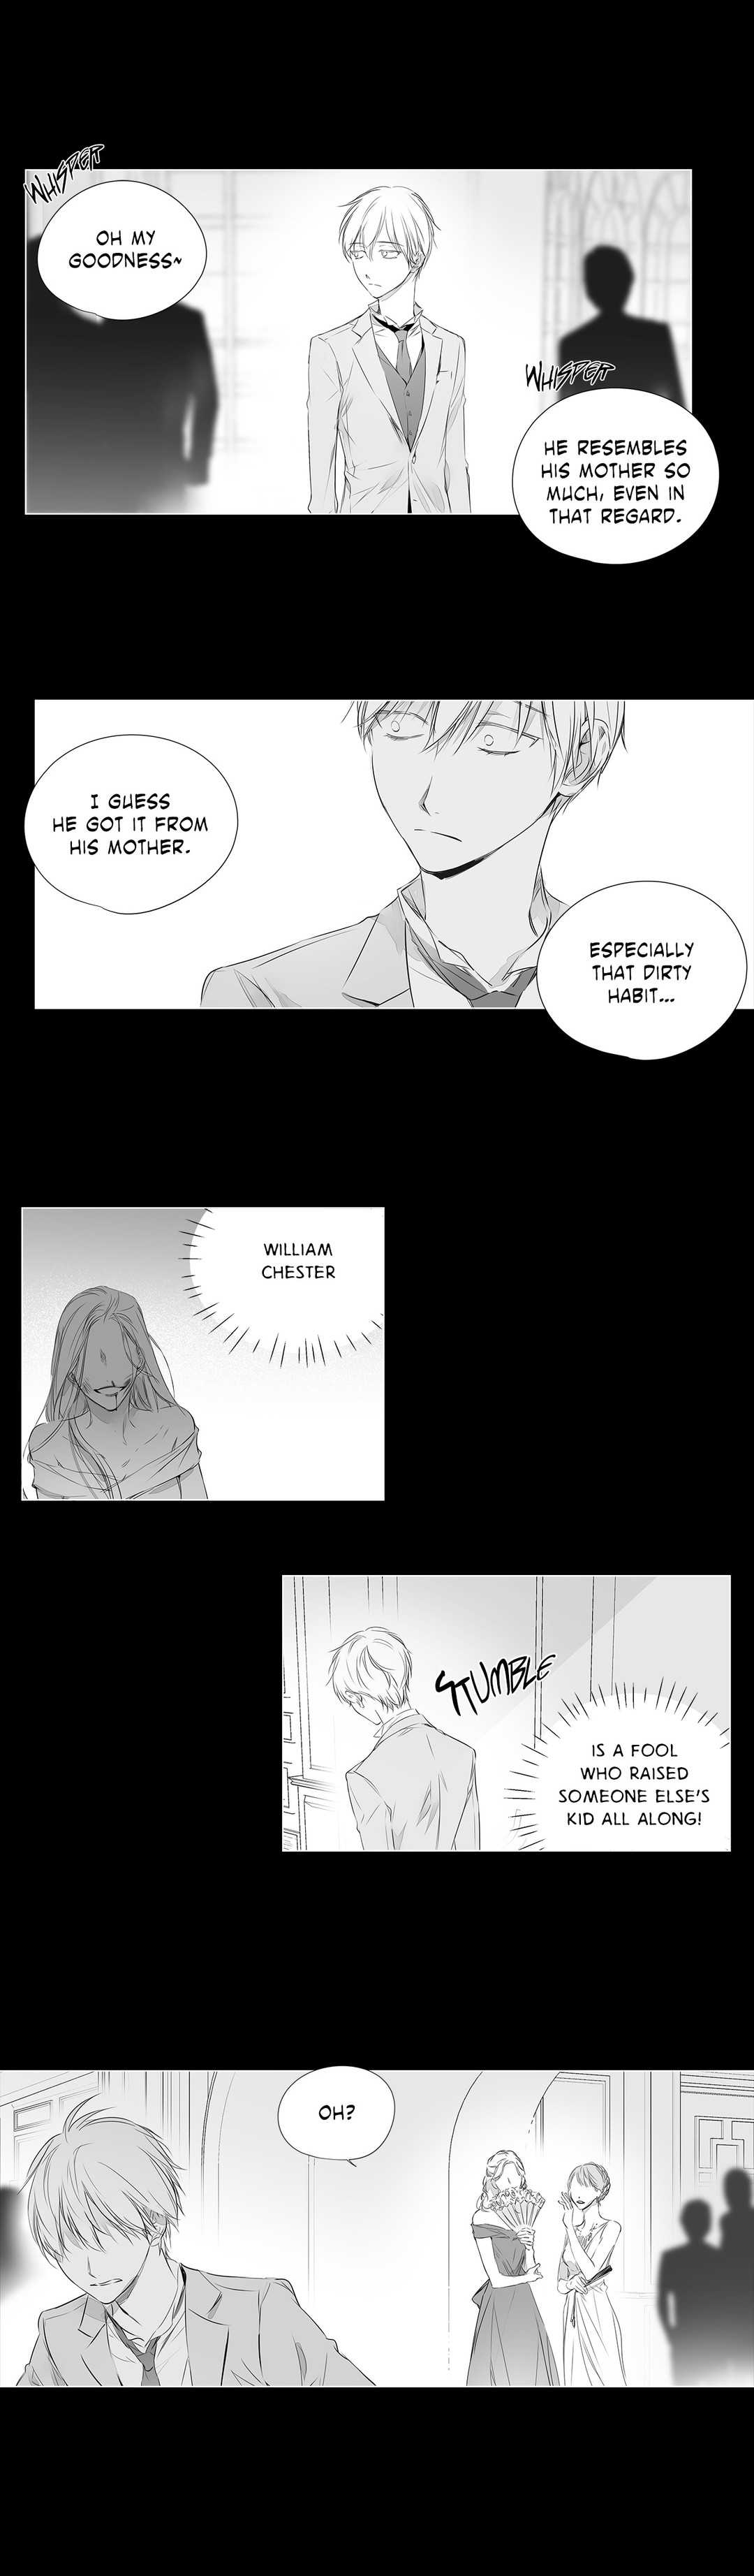 Moritat - Chapter 38